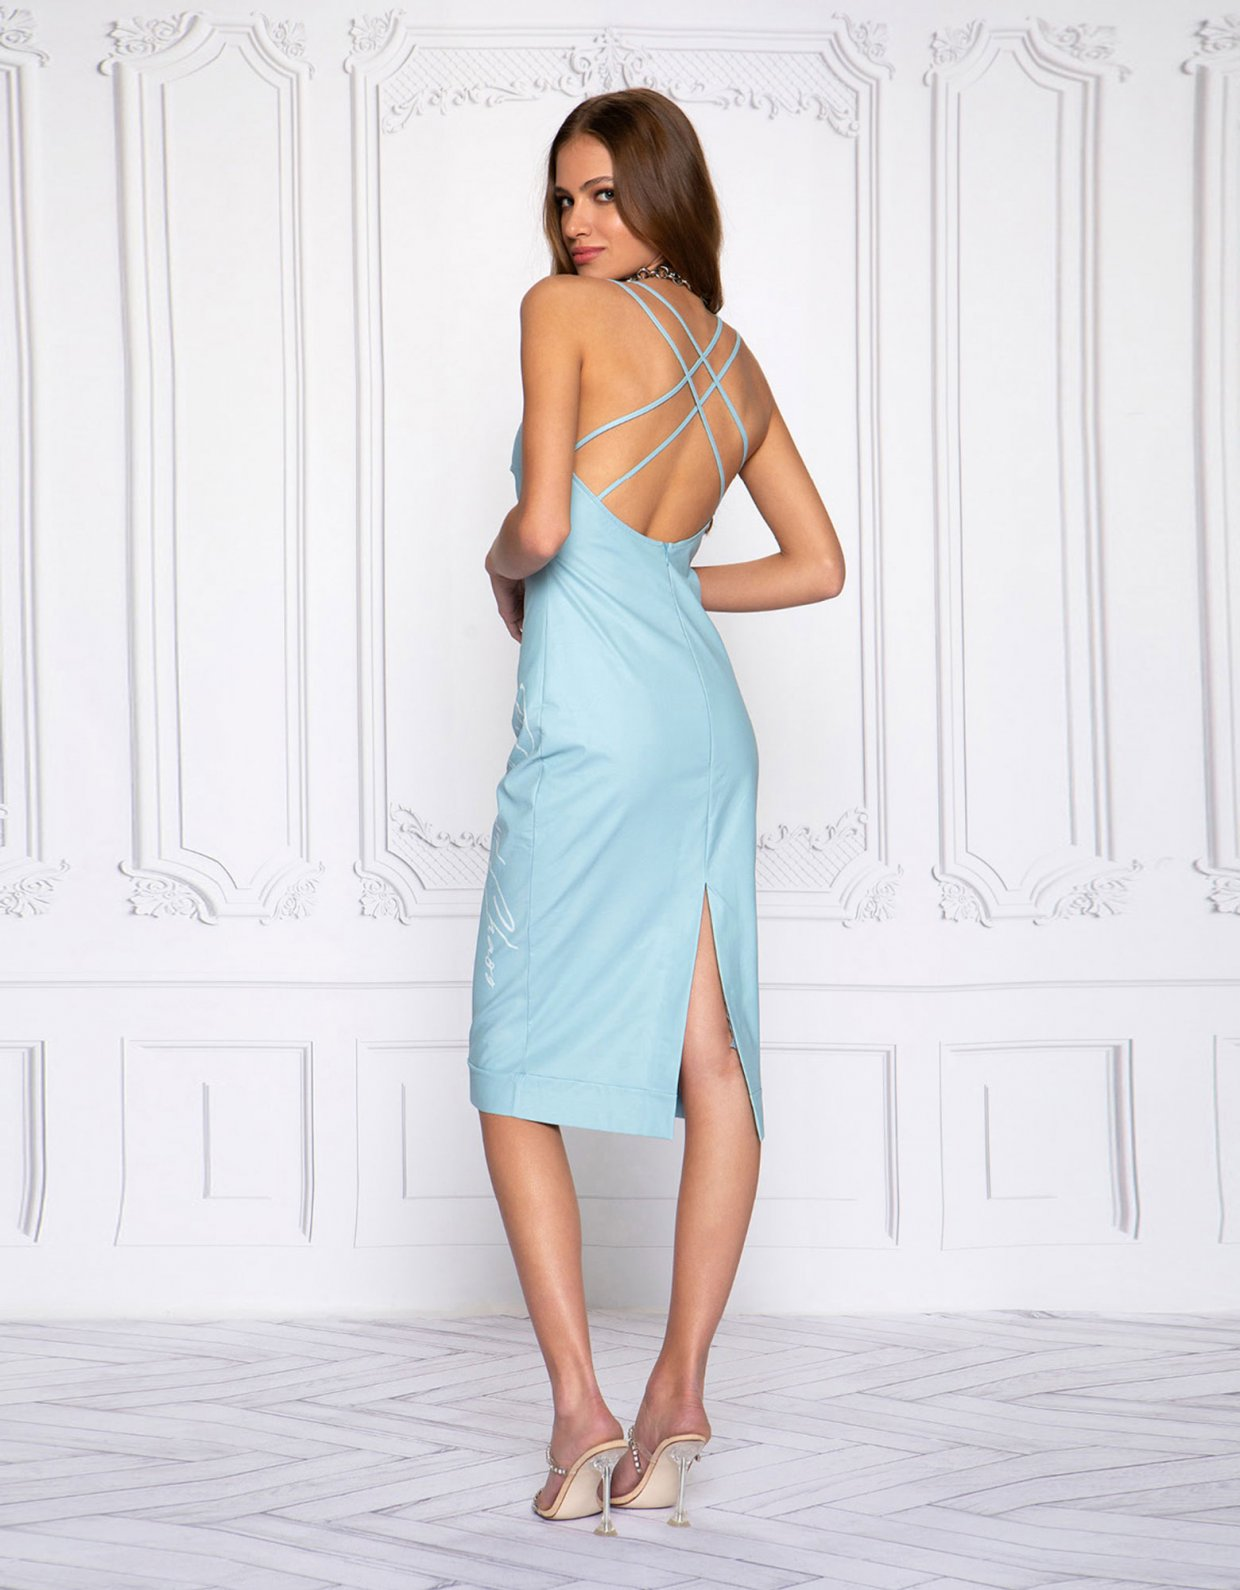 Peace & Chaos Eco leather chic dress